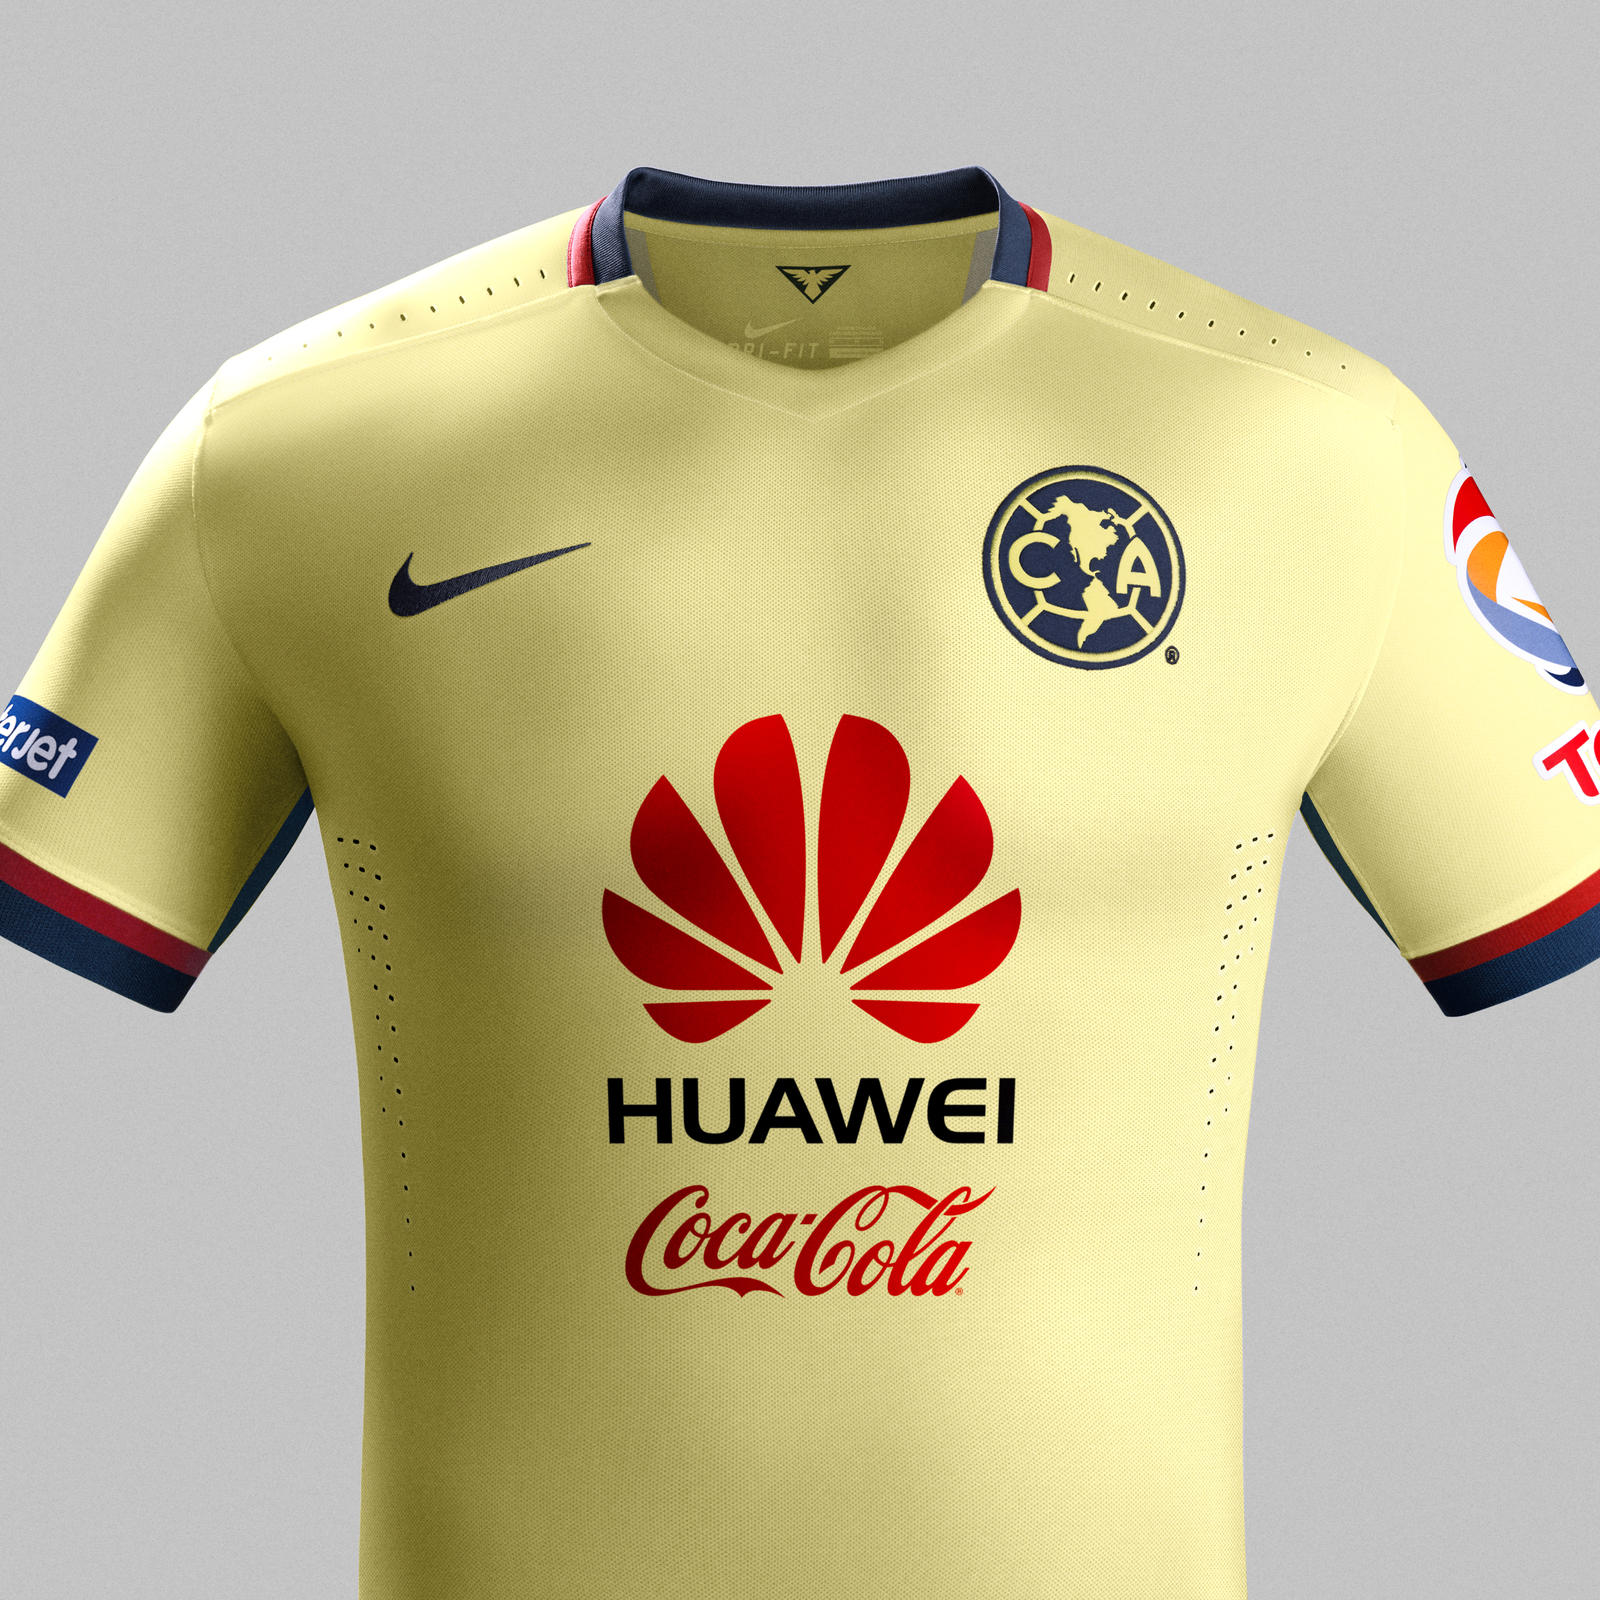 Club América Home and Away Kits for 2015-16 - Nike News 6427c6b4faf1